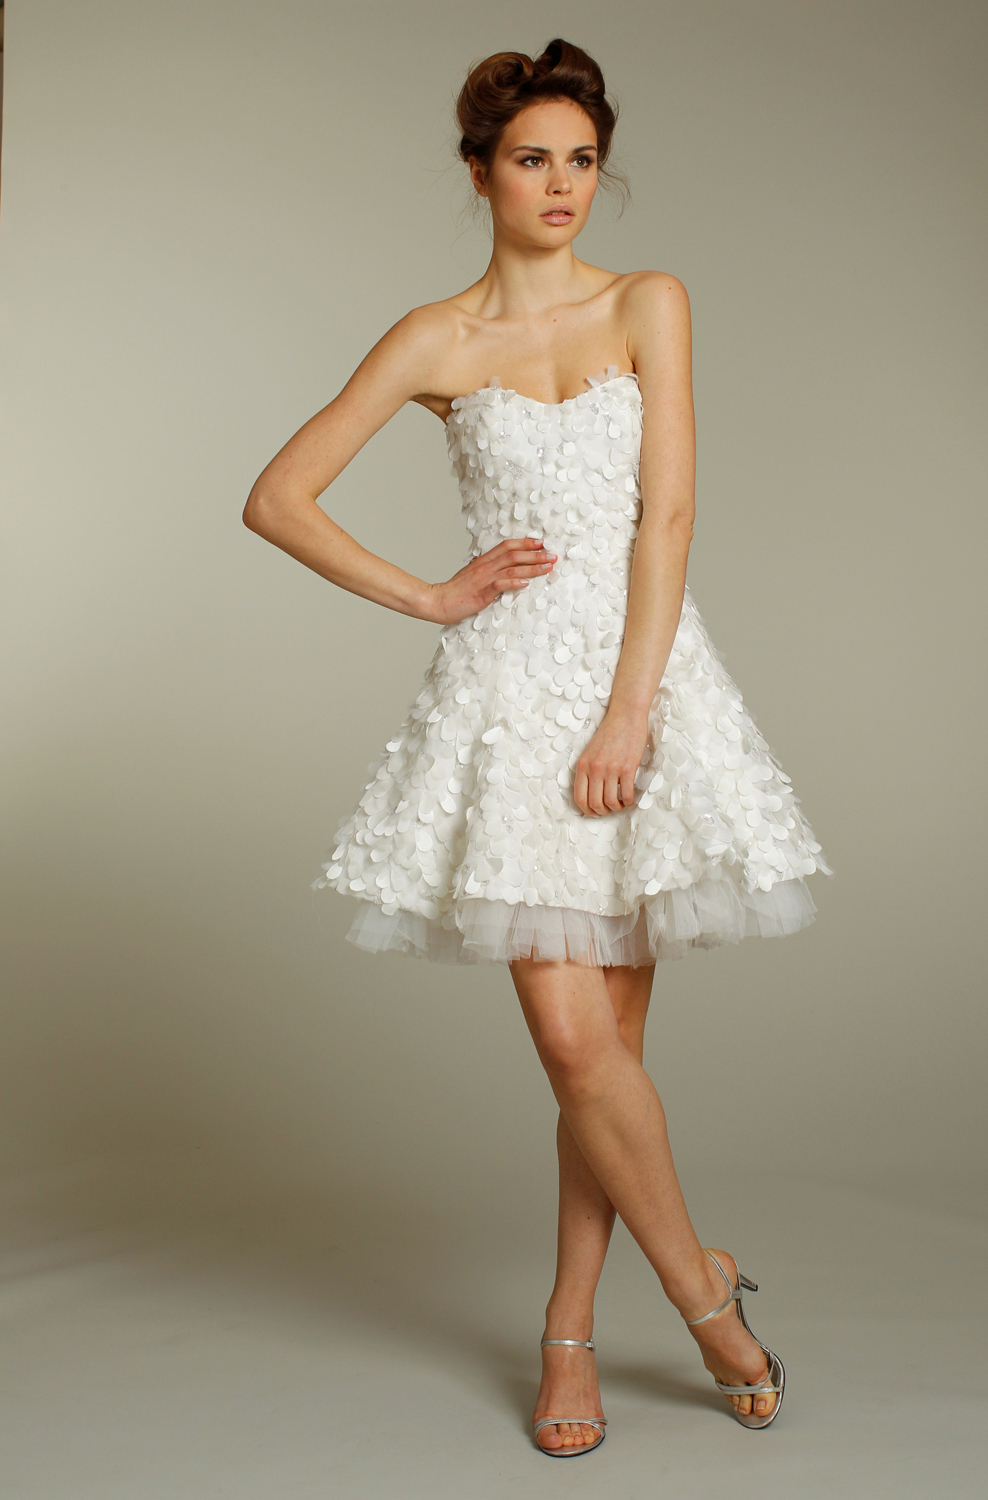 Chic And Stylish Fall Short Wedding Dresses